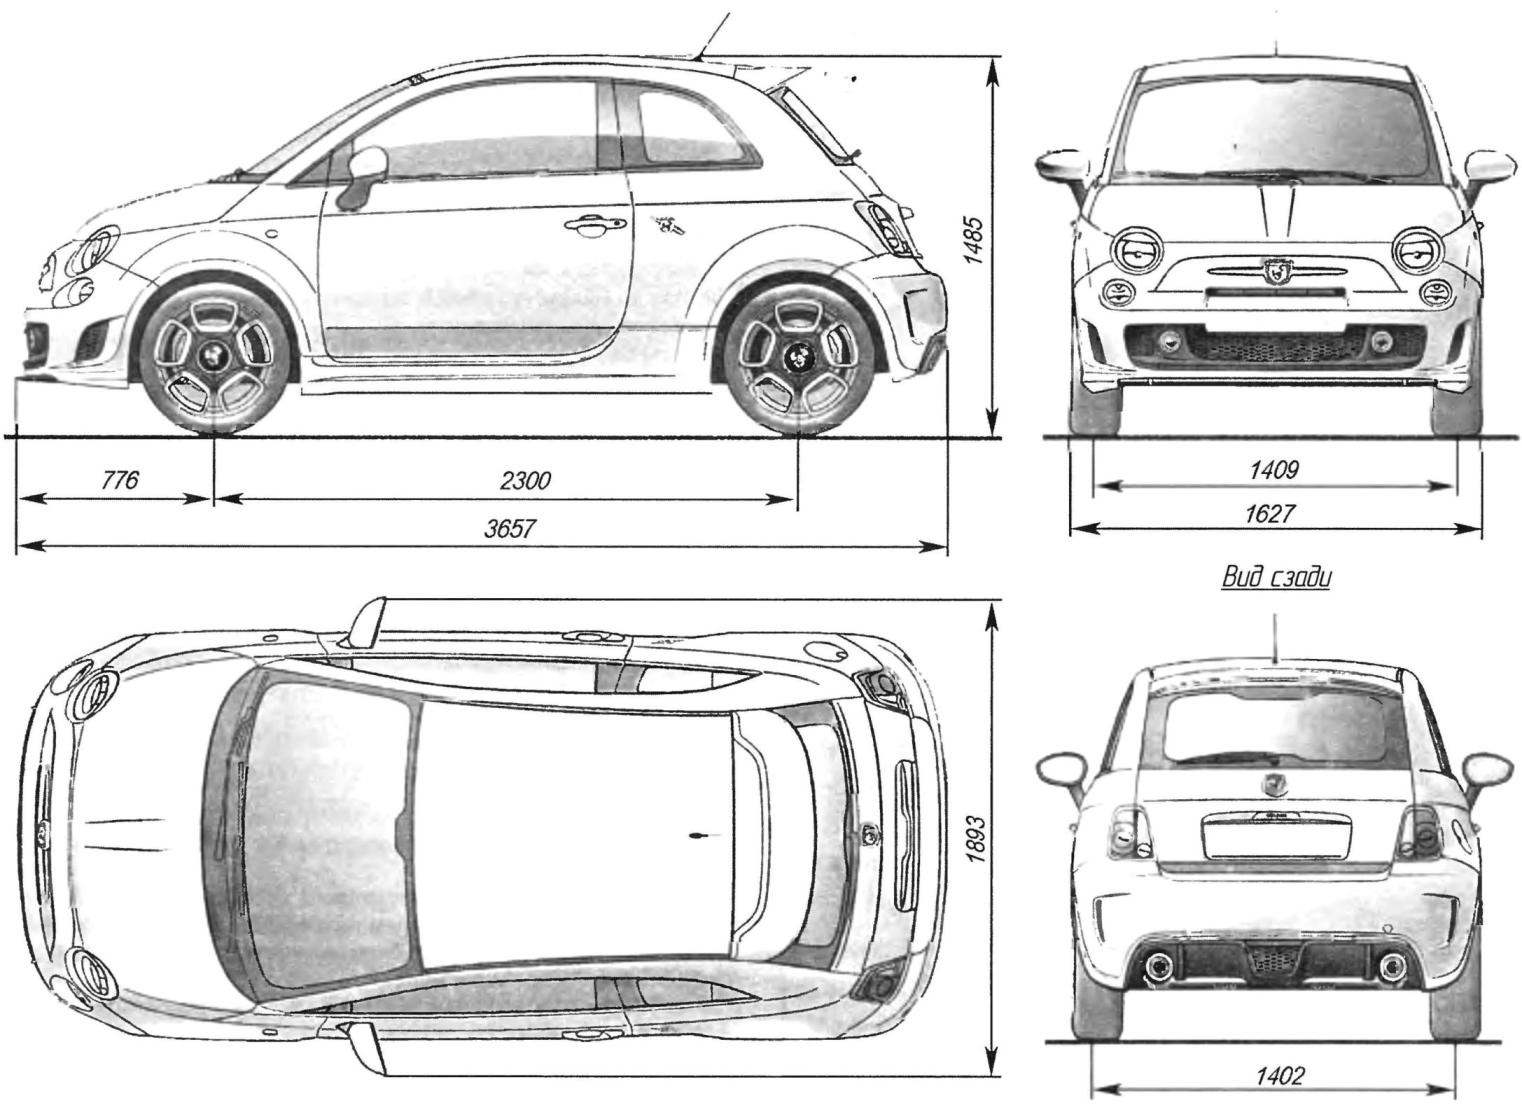 Geometric diagram of the FIAT 500 2007